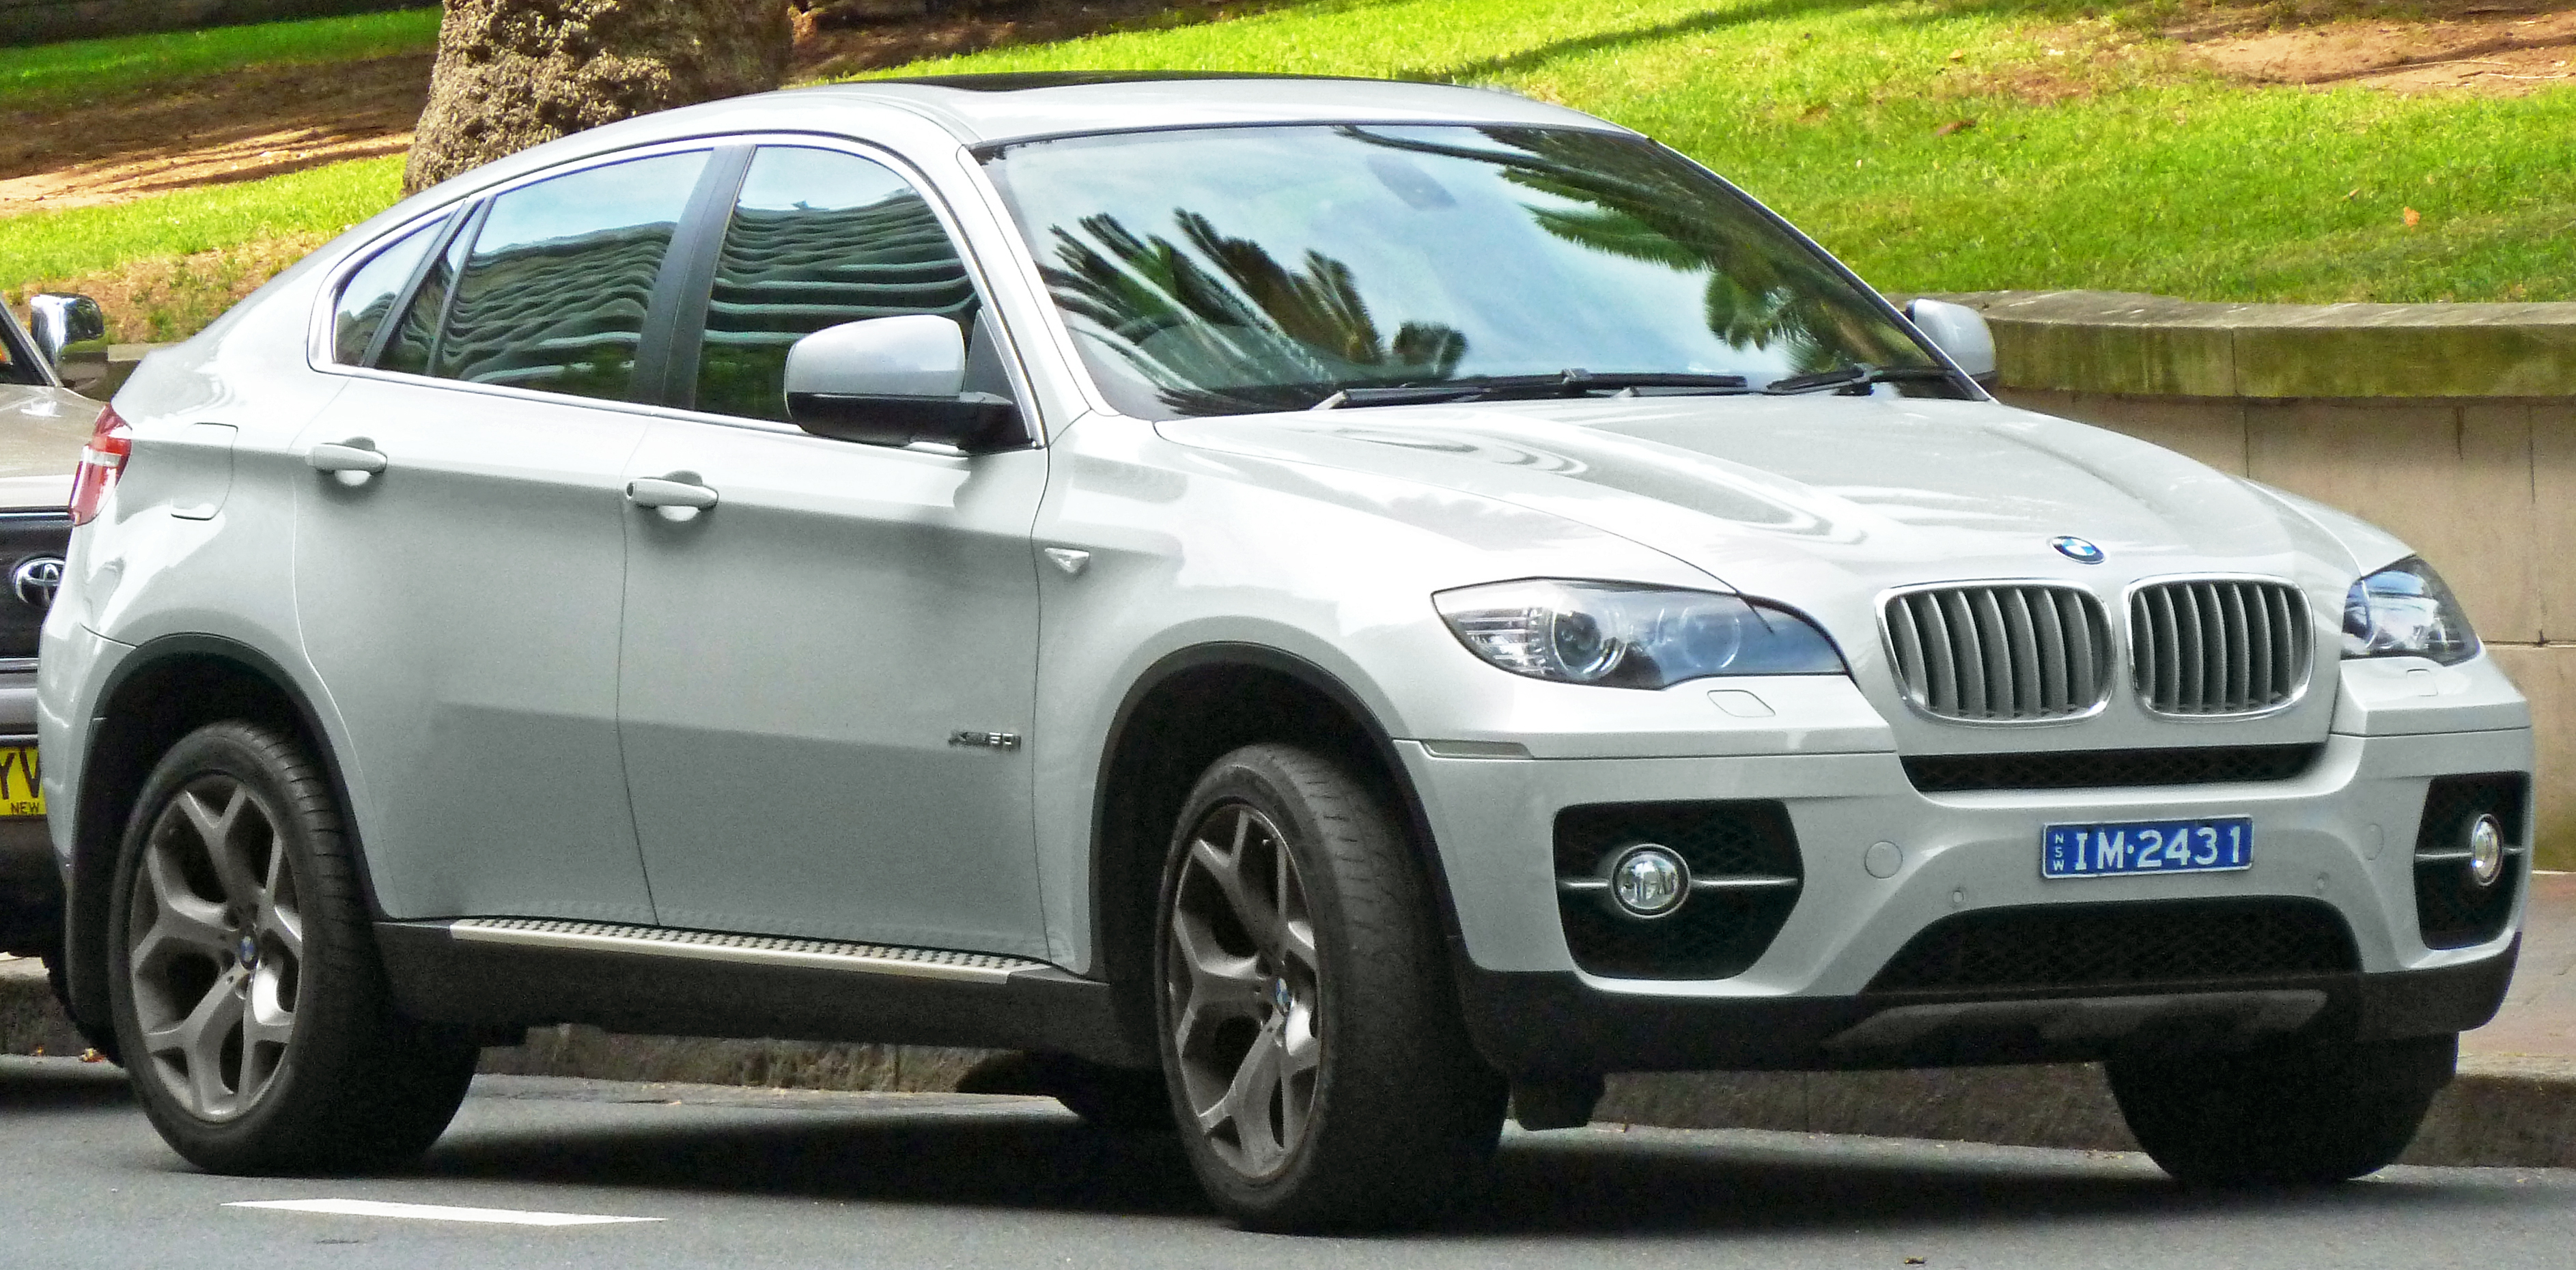 File 2008 2011 Bmw X6 E71 Xdrive50i Wagon 2011 11 08 01 Jpg Wikimedia Commons